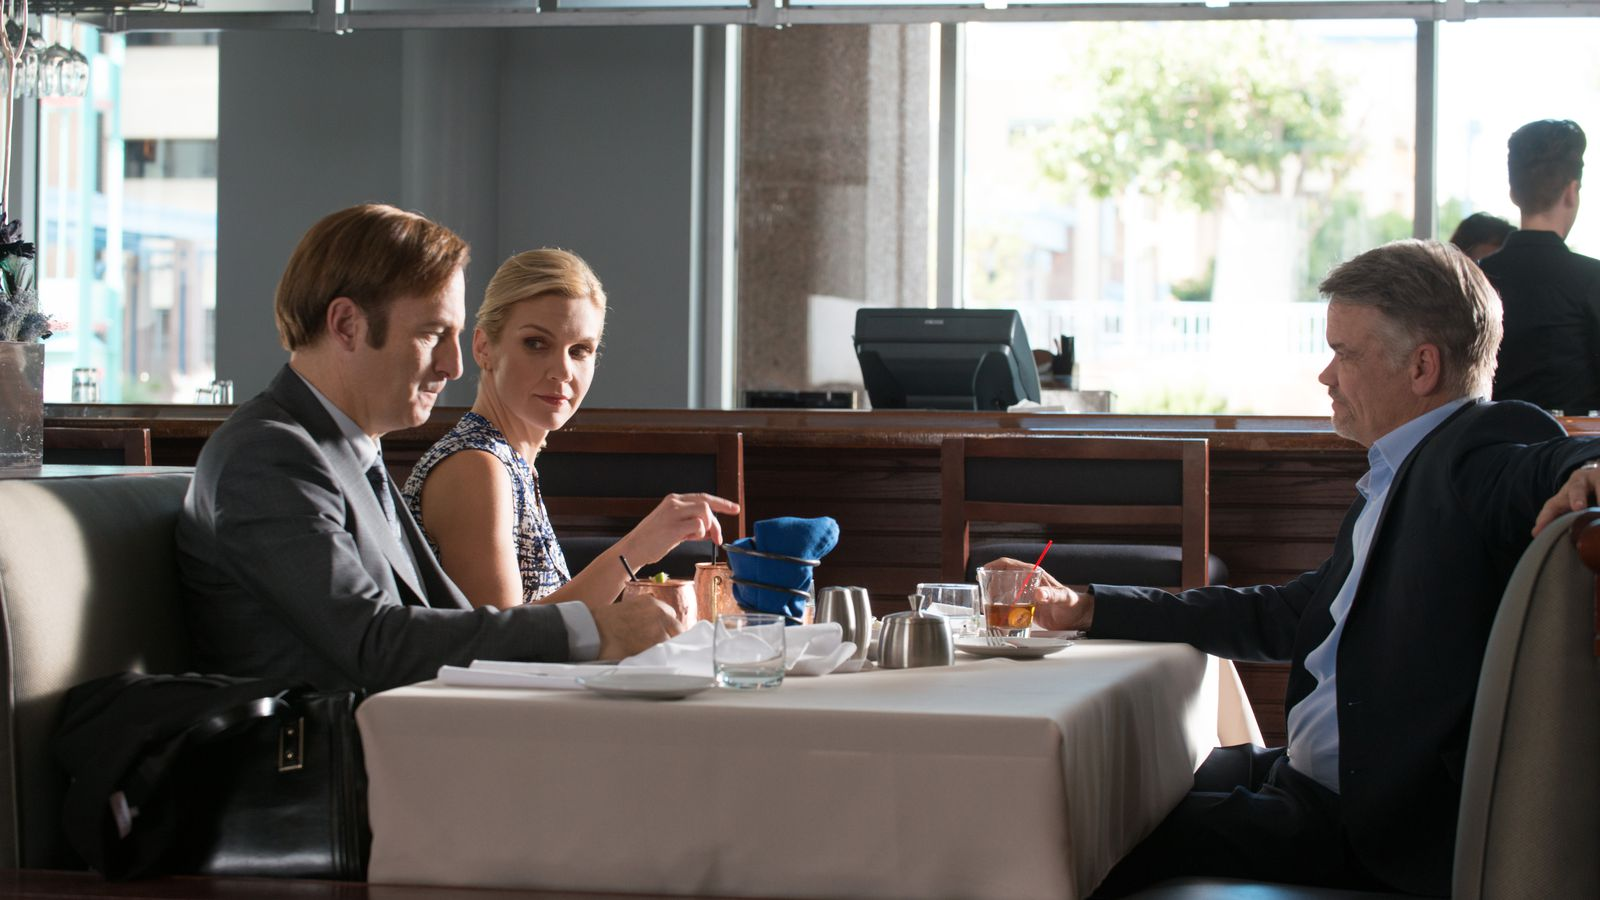 To Understand 'Better Call Saul's' Kim Wexler, Look at Her Drink ...